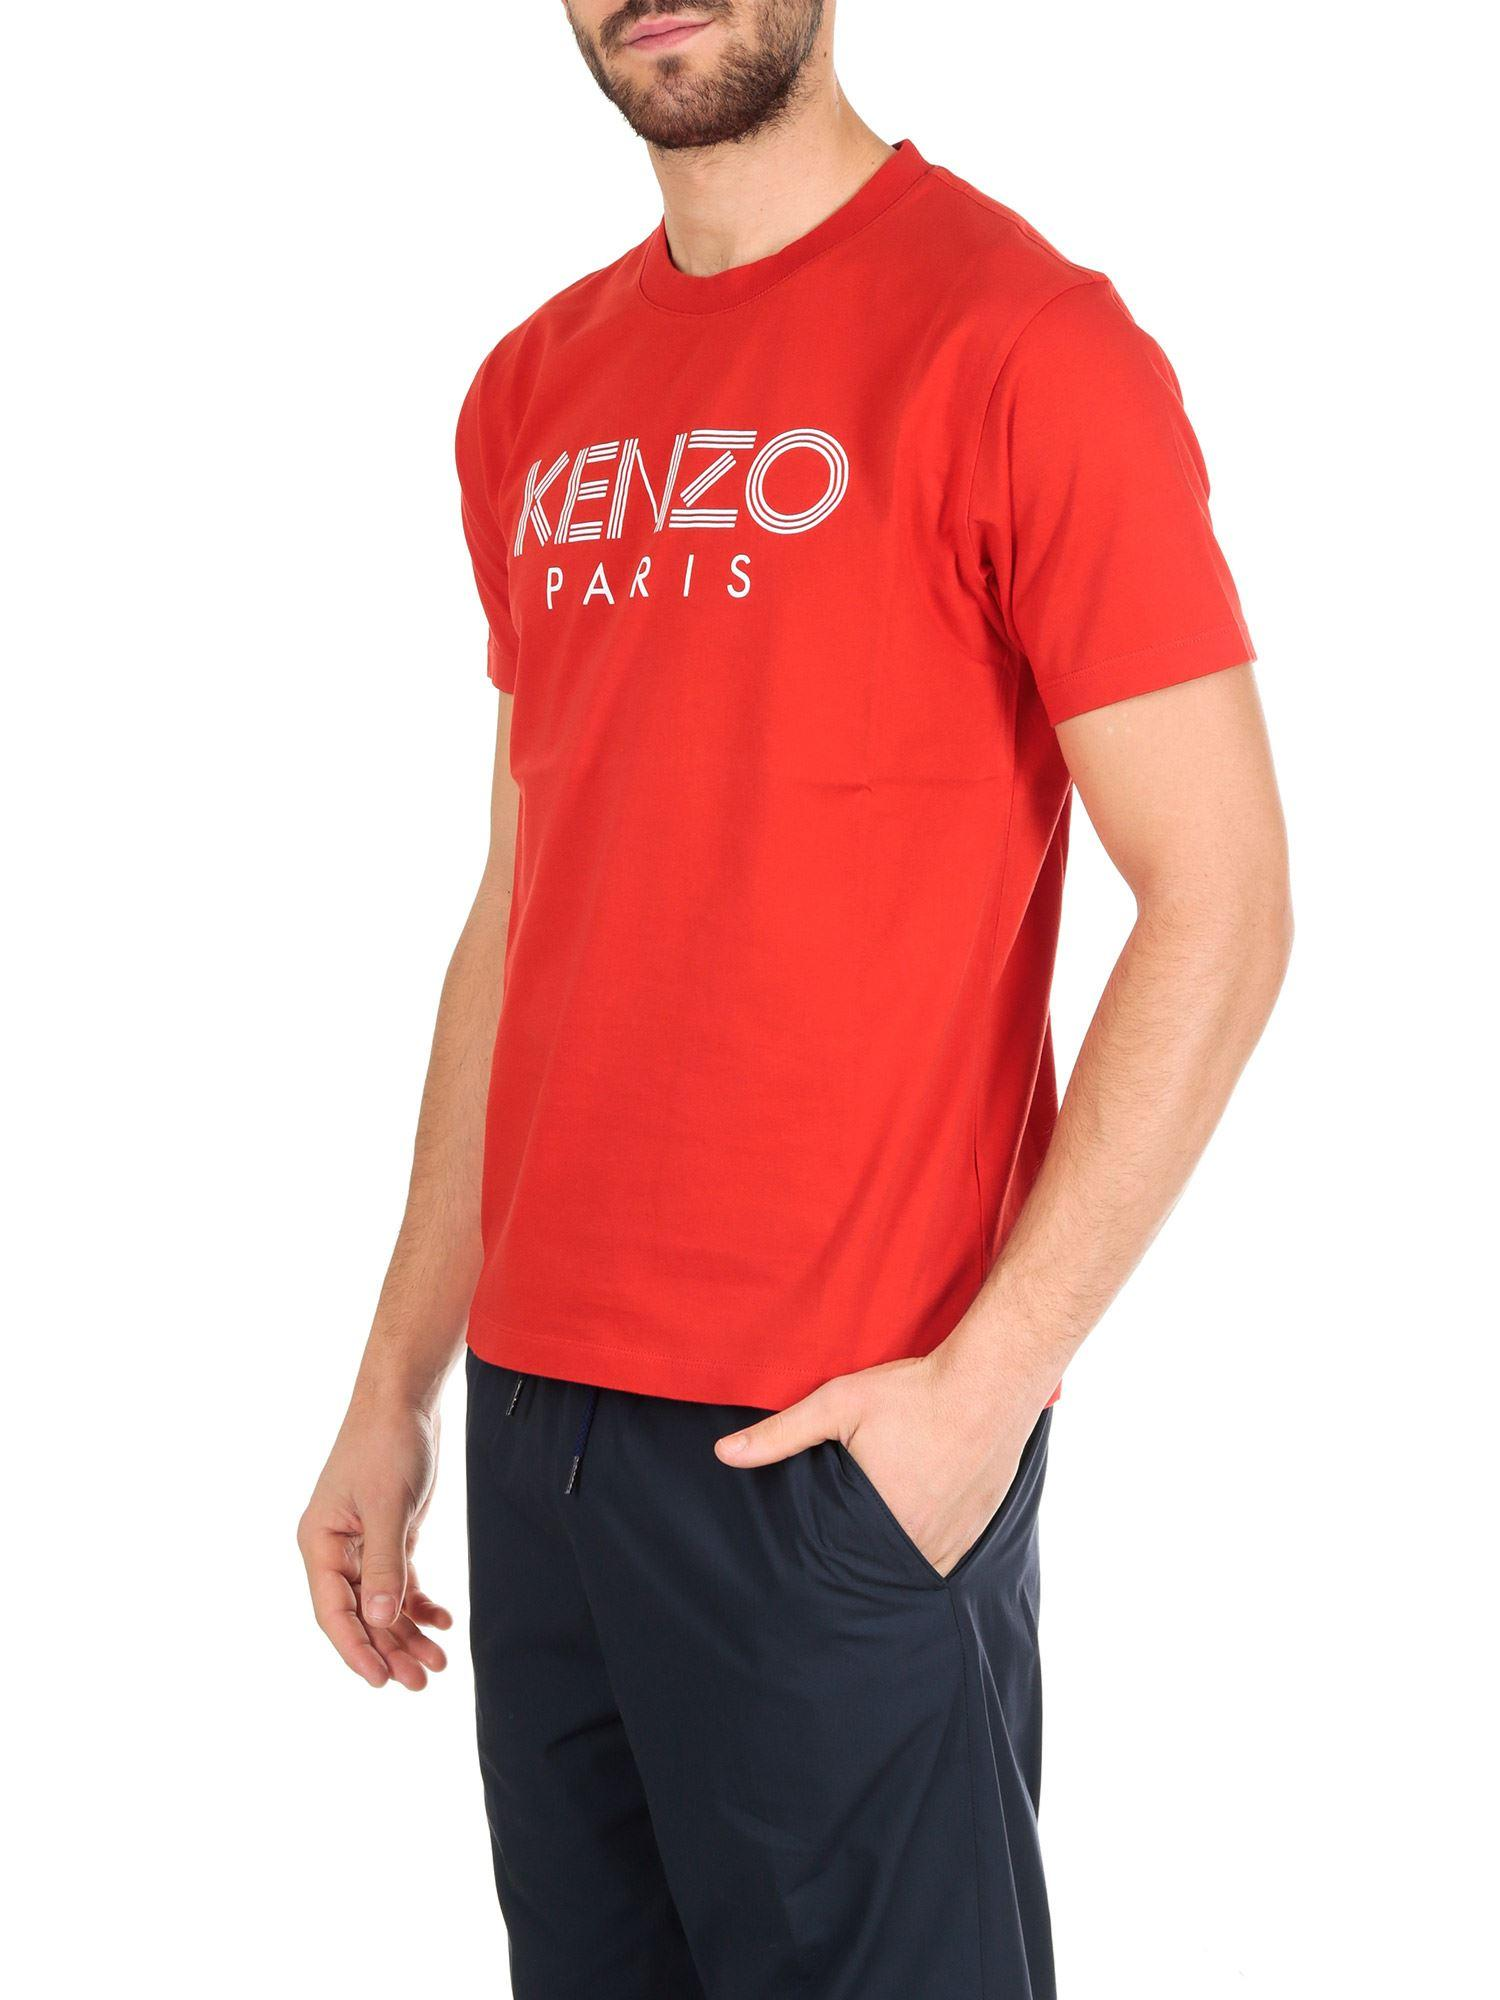 003a4f273 Lyst - KENZO Paris T-shirt In Red Cotton in Red for Men